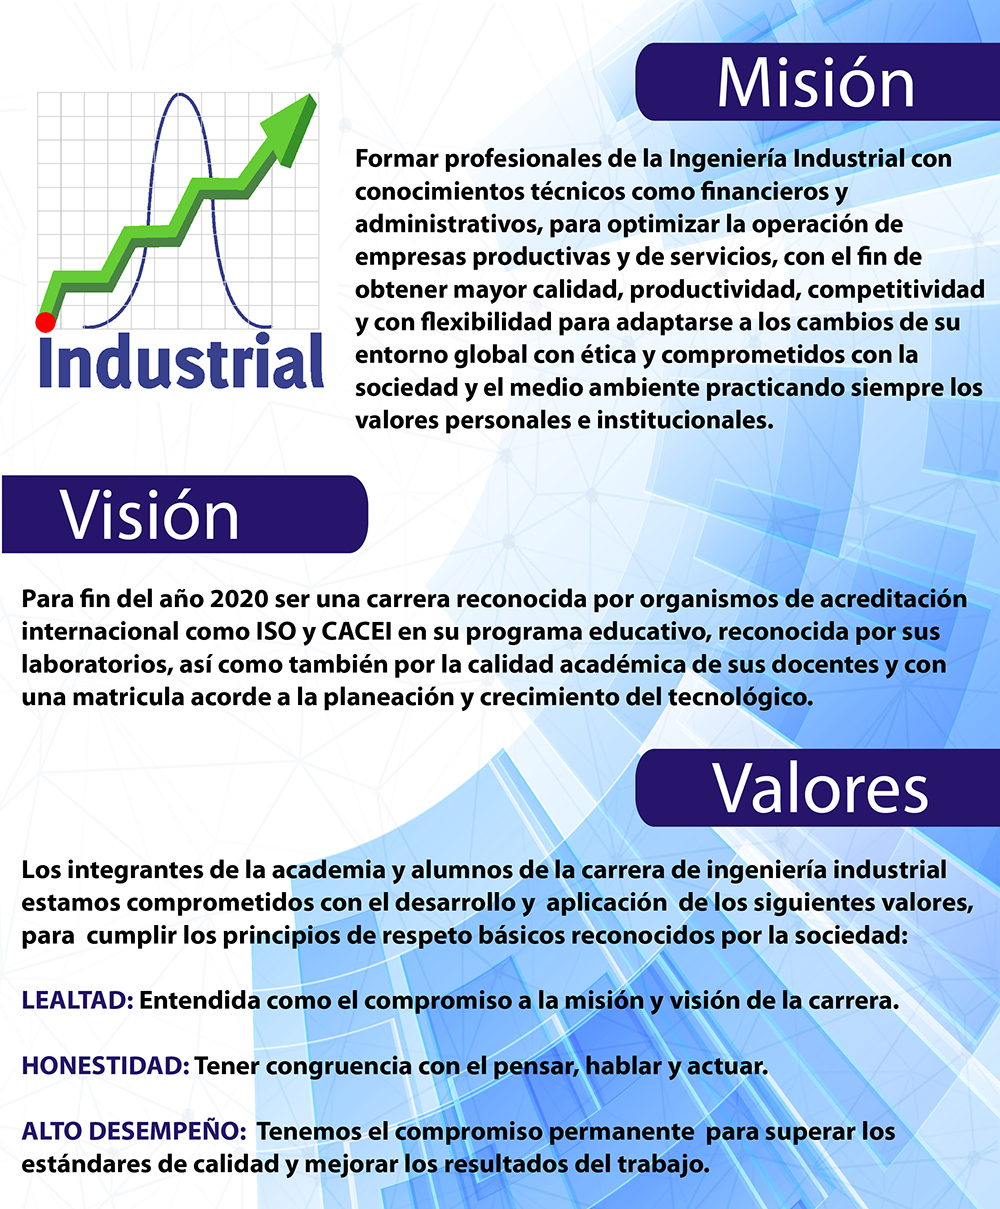 MISION_VISION_VALORES_ING INDUSTRIAL